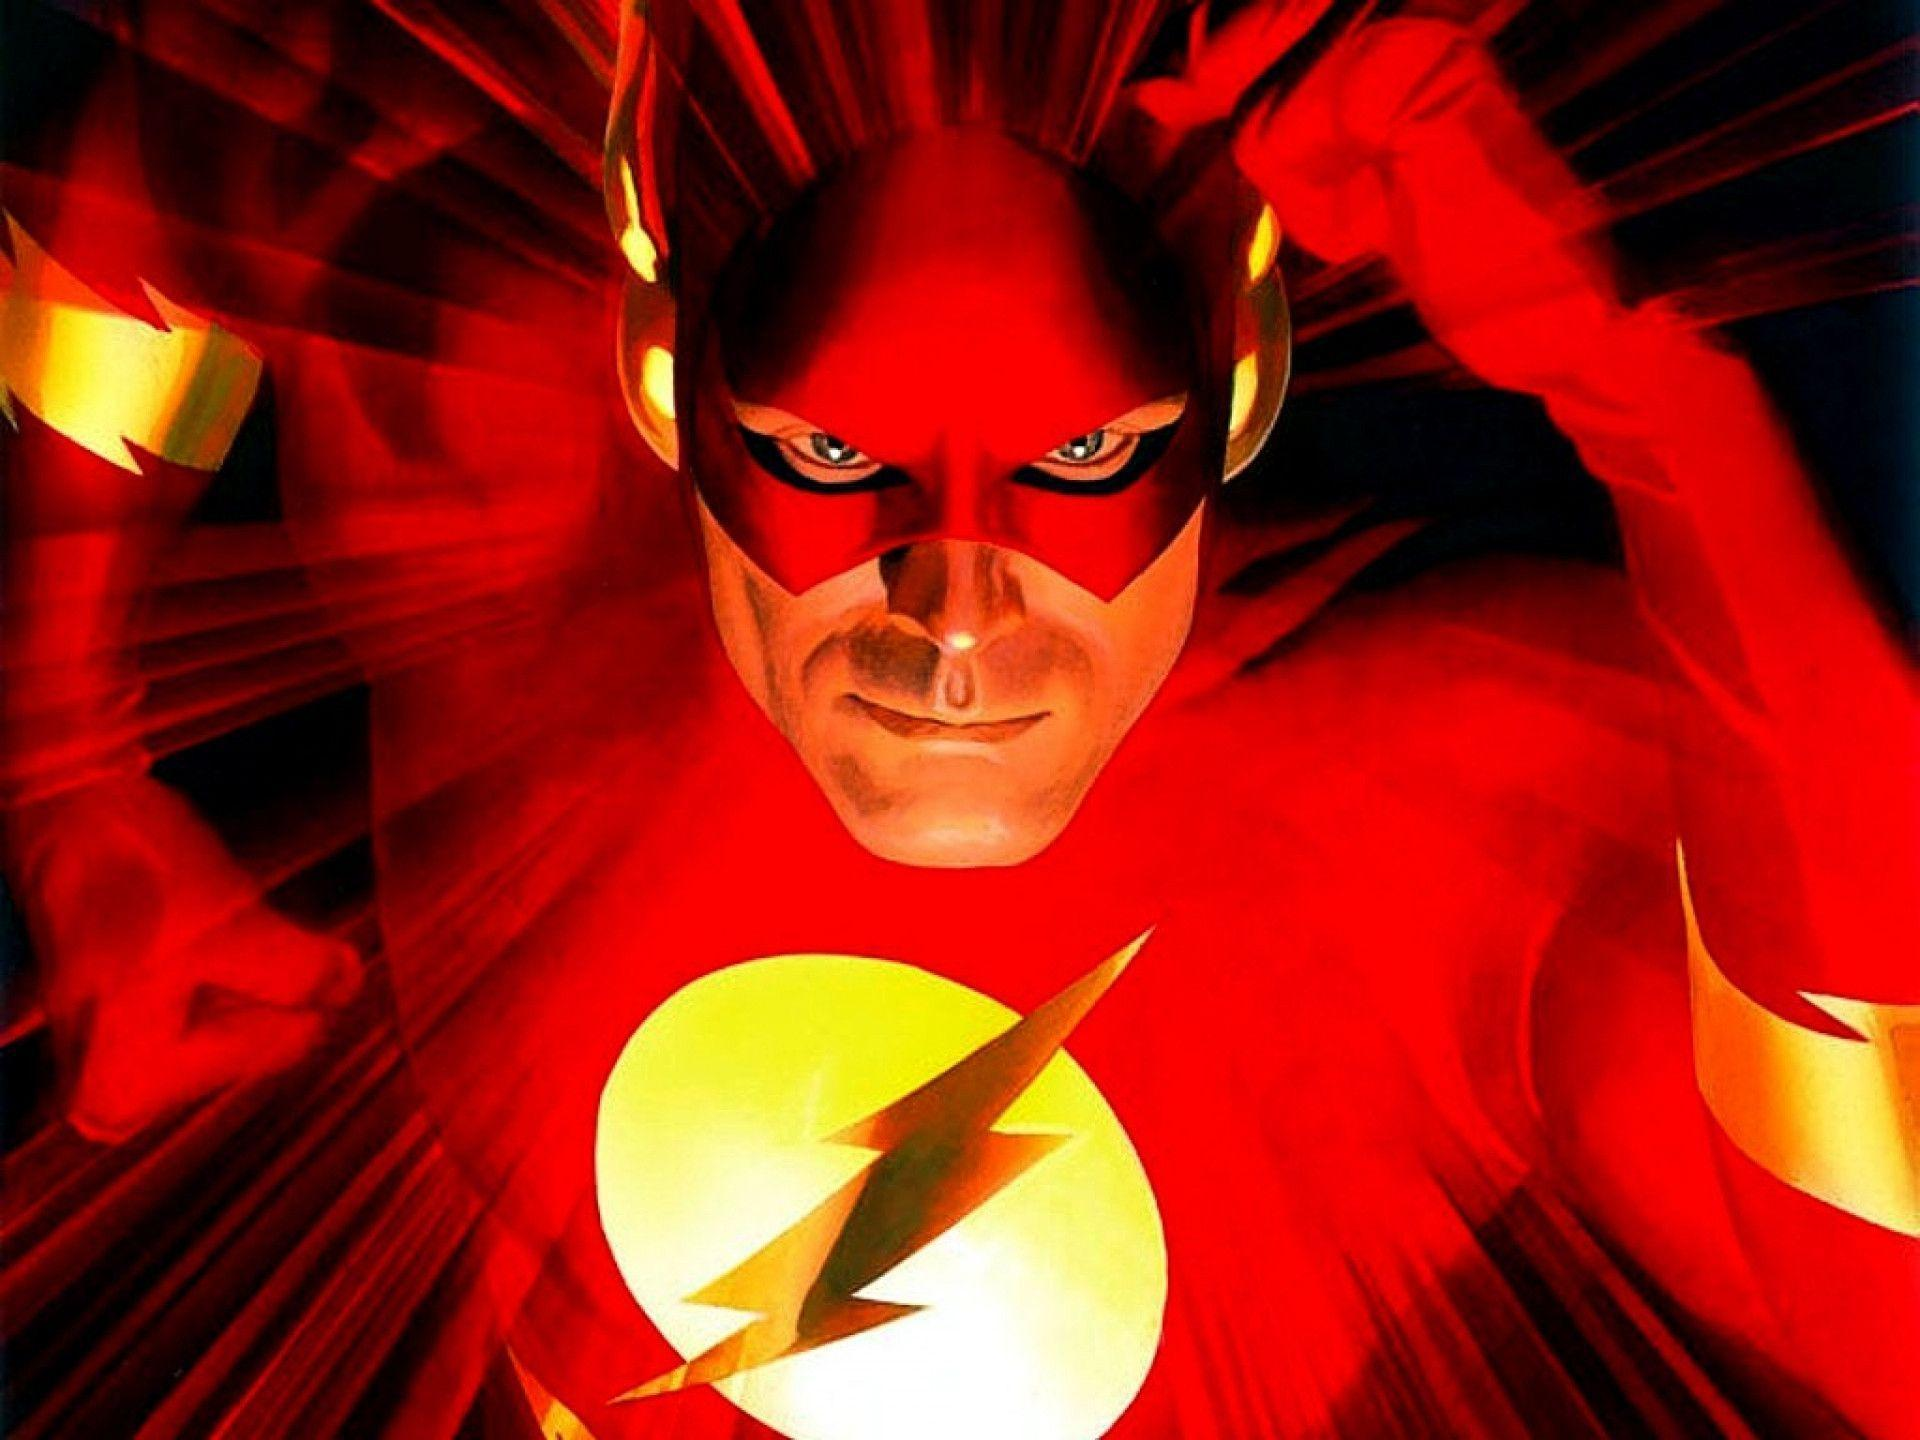 Wallpapers For > The Flash Superhero Wallpapers